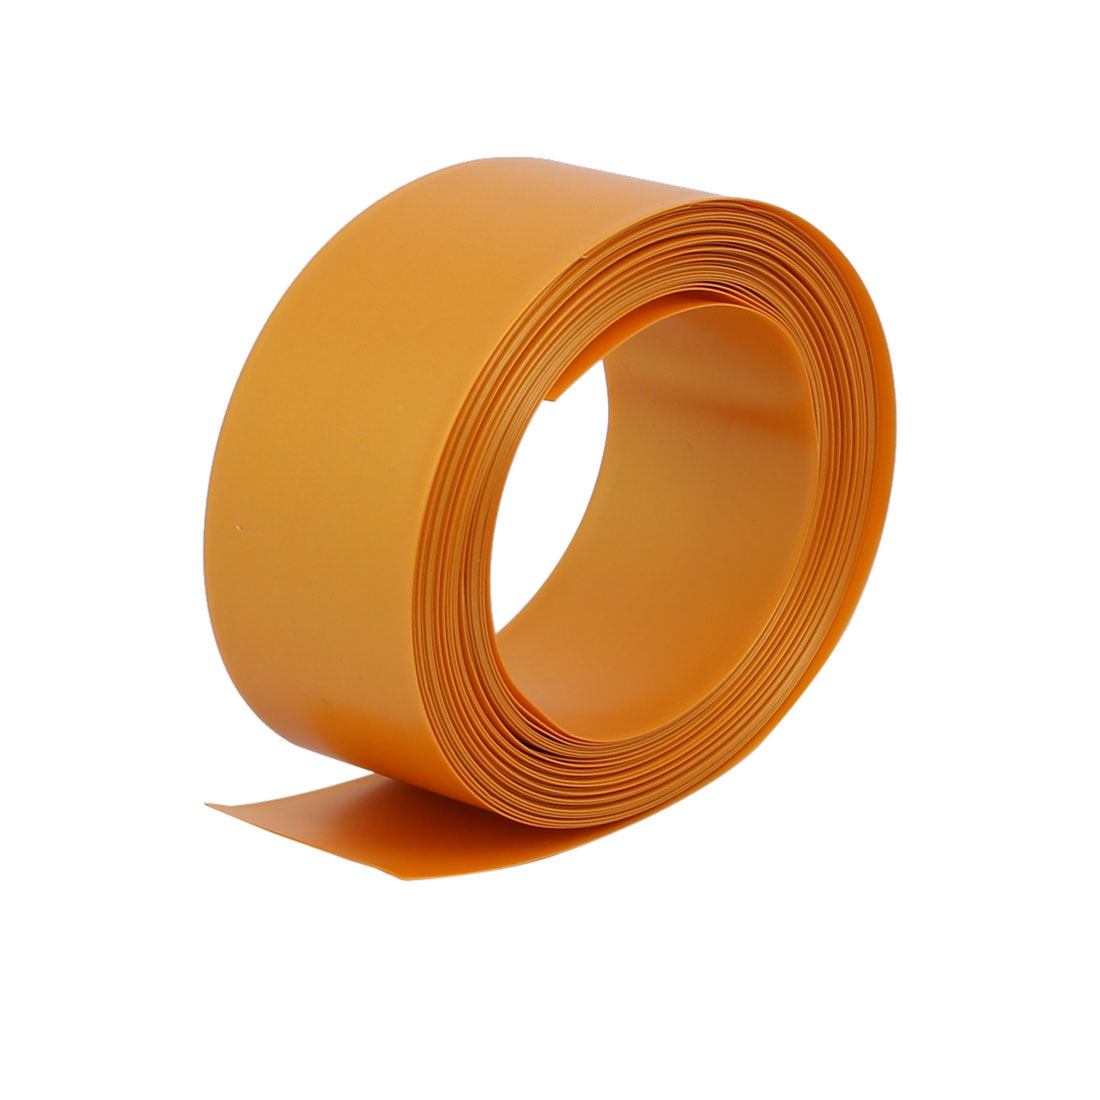 Unique Bargains 29.5mm Flat Width 6M Length PVC Heat Shrinkable Tube Gold Tone for 18650 Battery - image 3 of 3